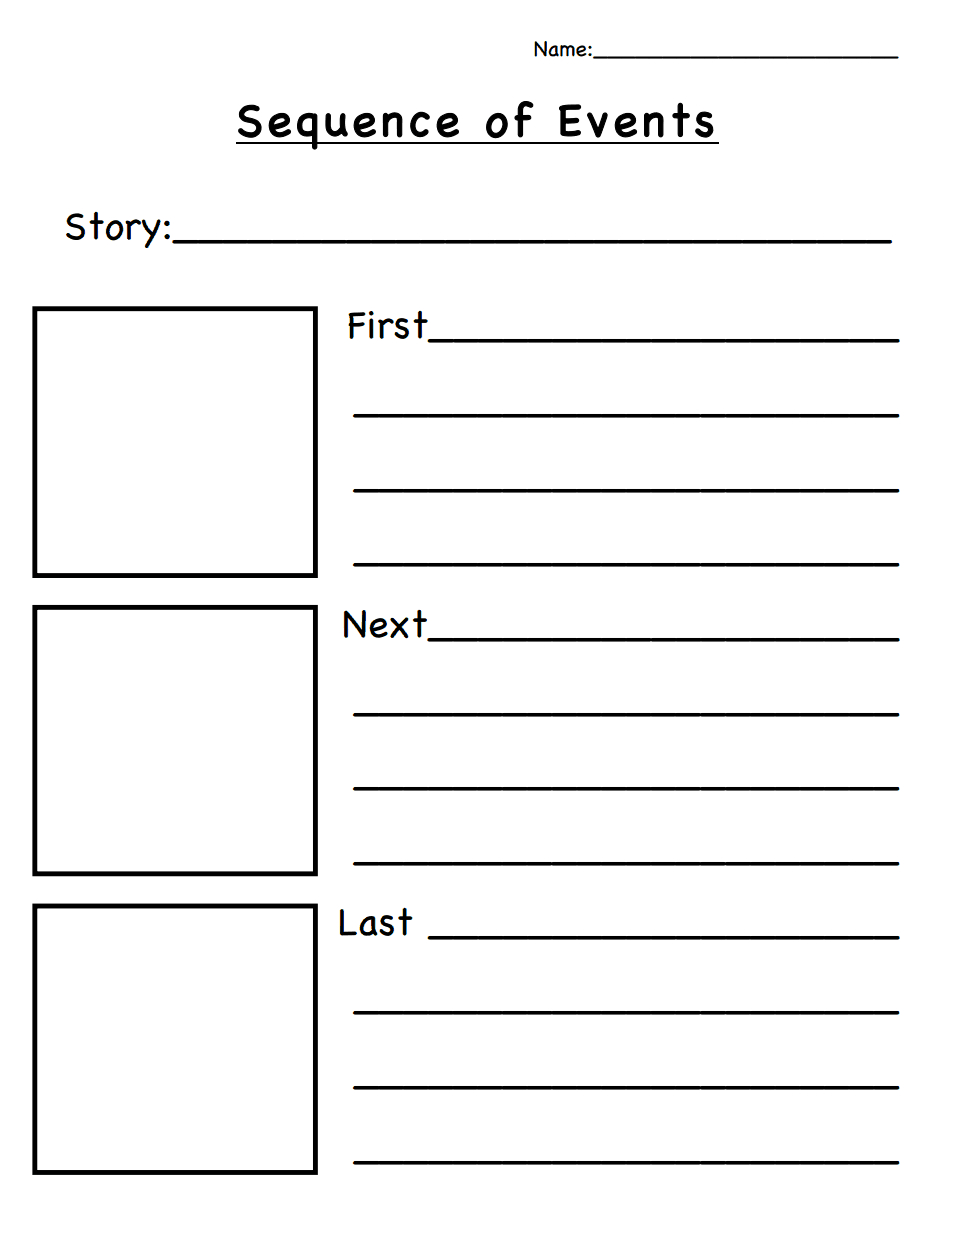 Sequence Of Events.pdf   Classroom Ideas   Sequencing Worksheets - Free Printable Sequencing Worksheets 2Nd Grade